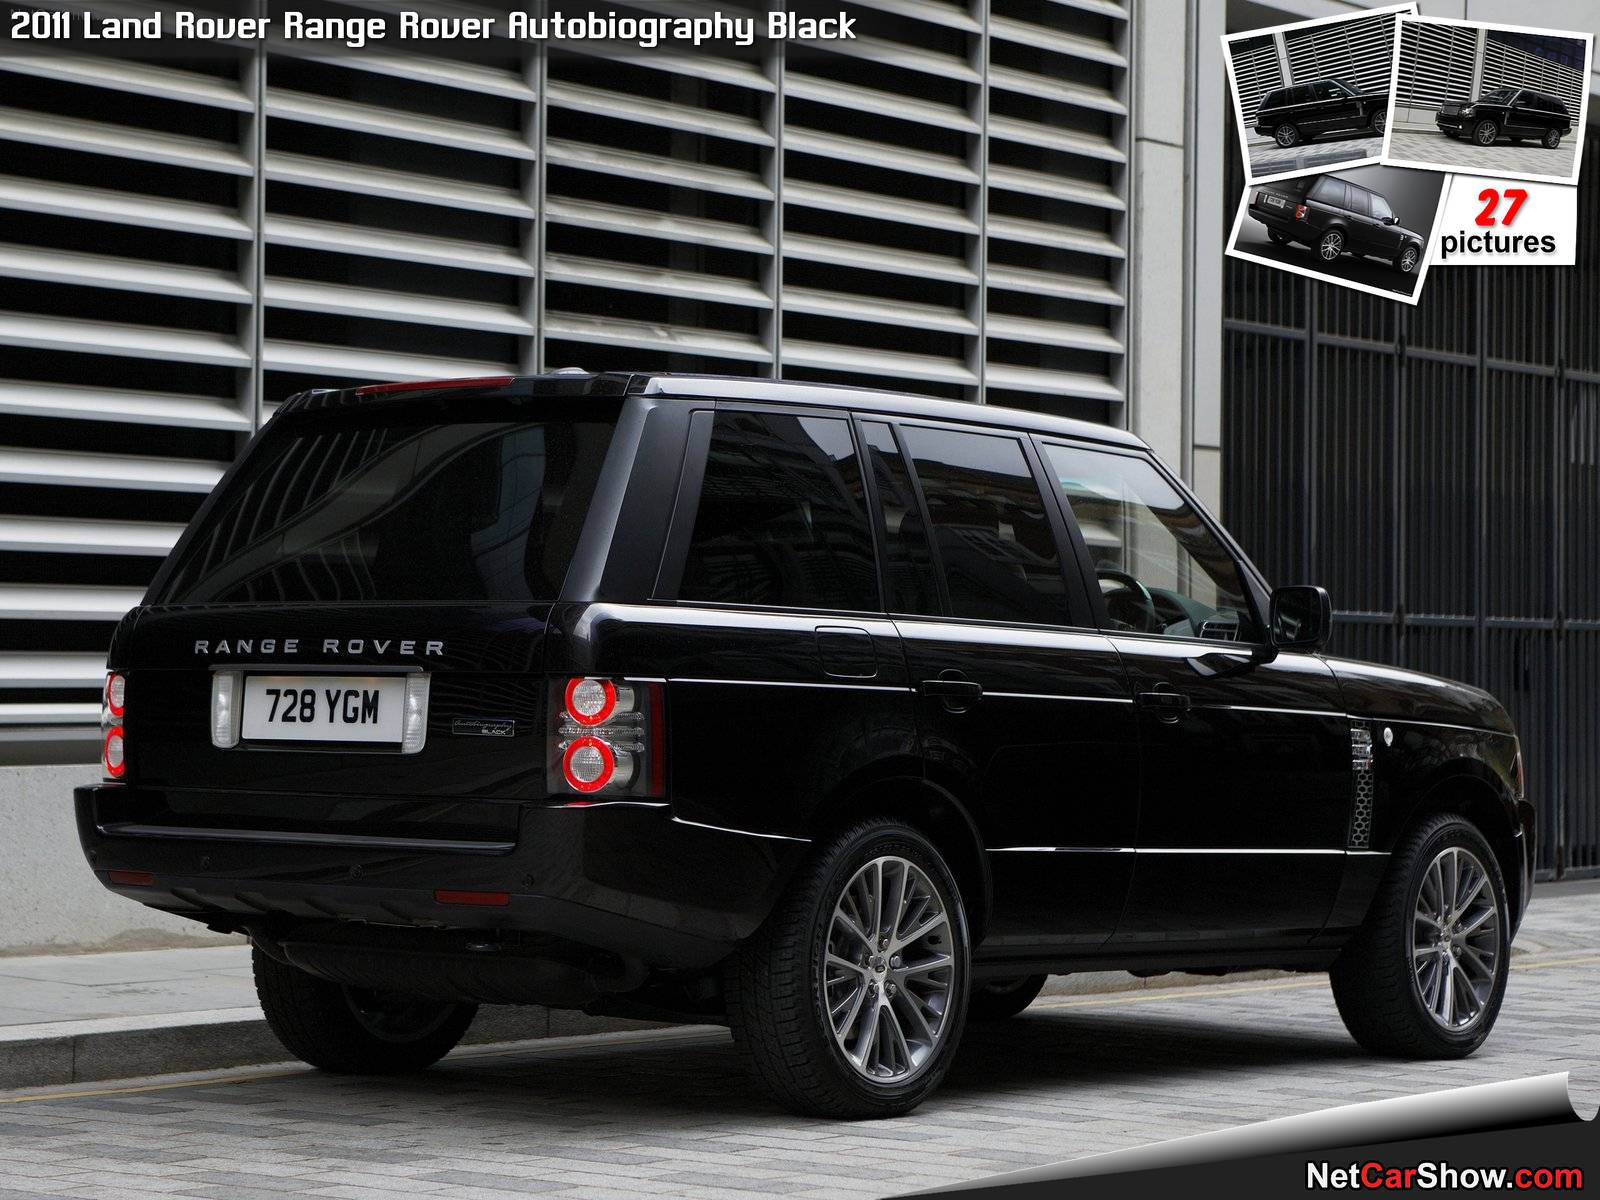 Land Rover Range Rover Wallpaper Auto Databasecom